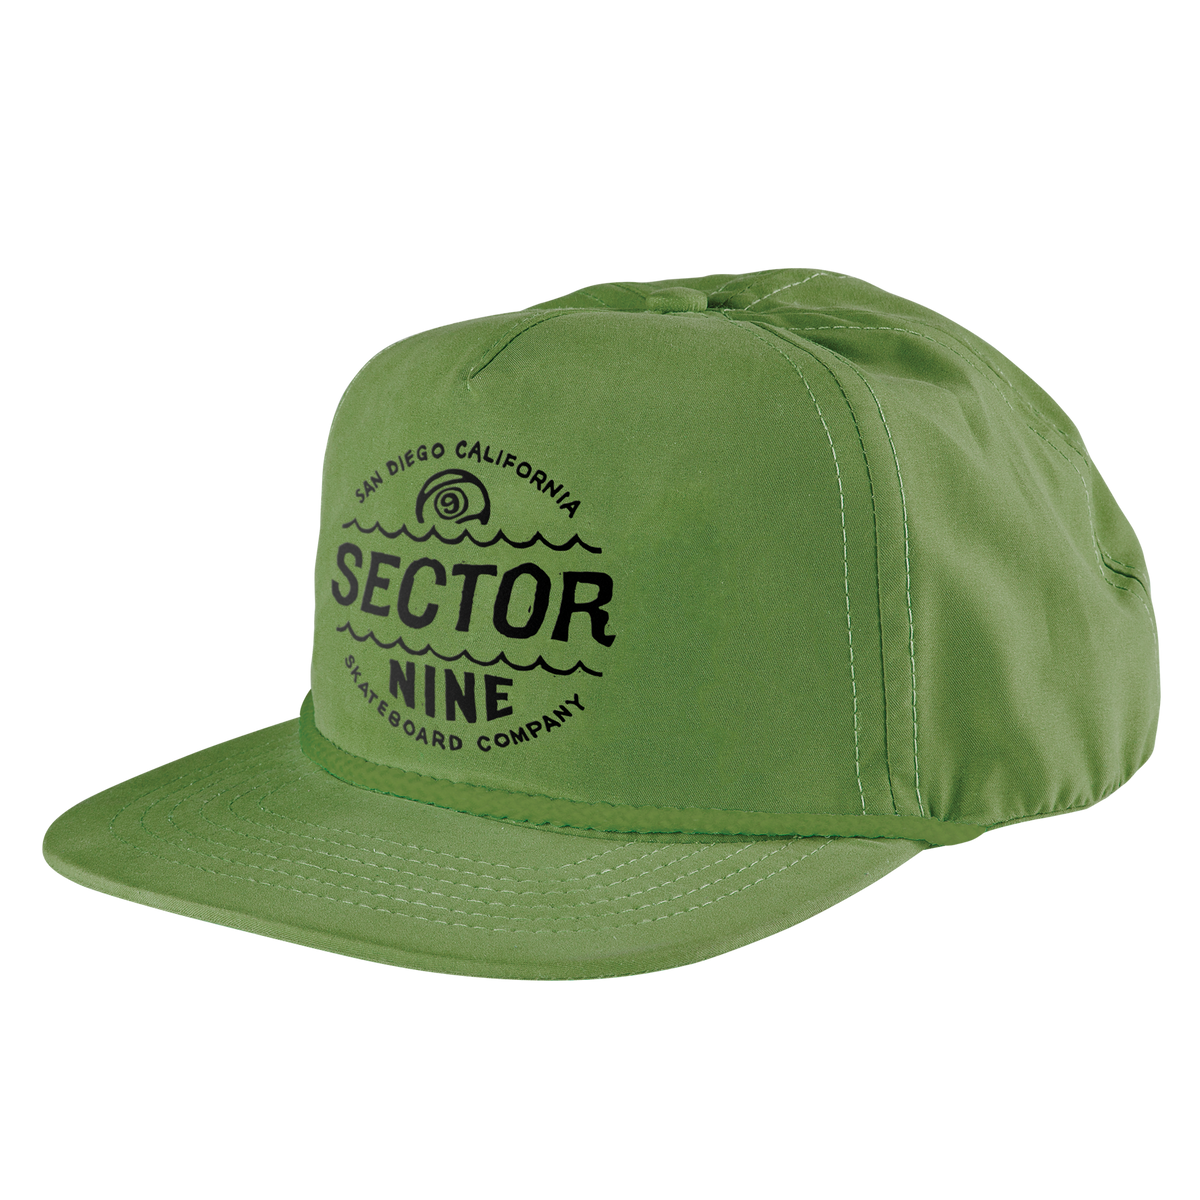 sector-nine-green-cyclone-snapback-hat